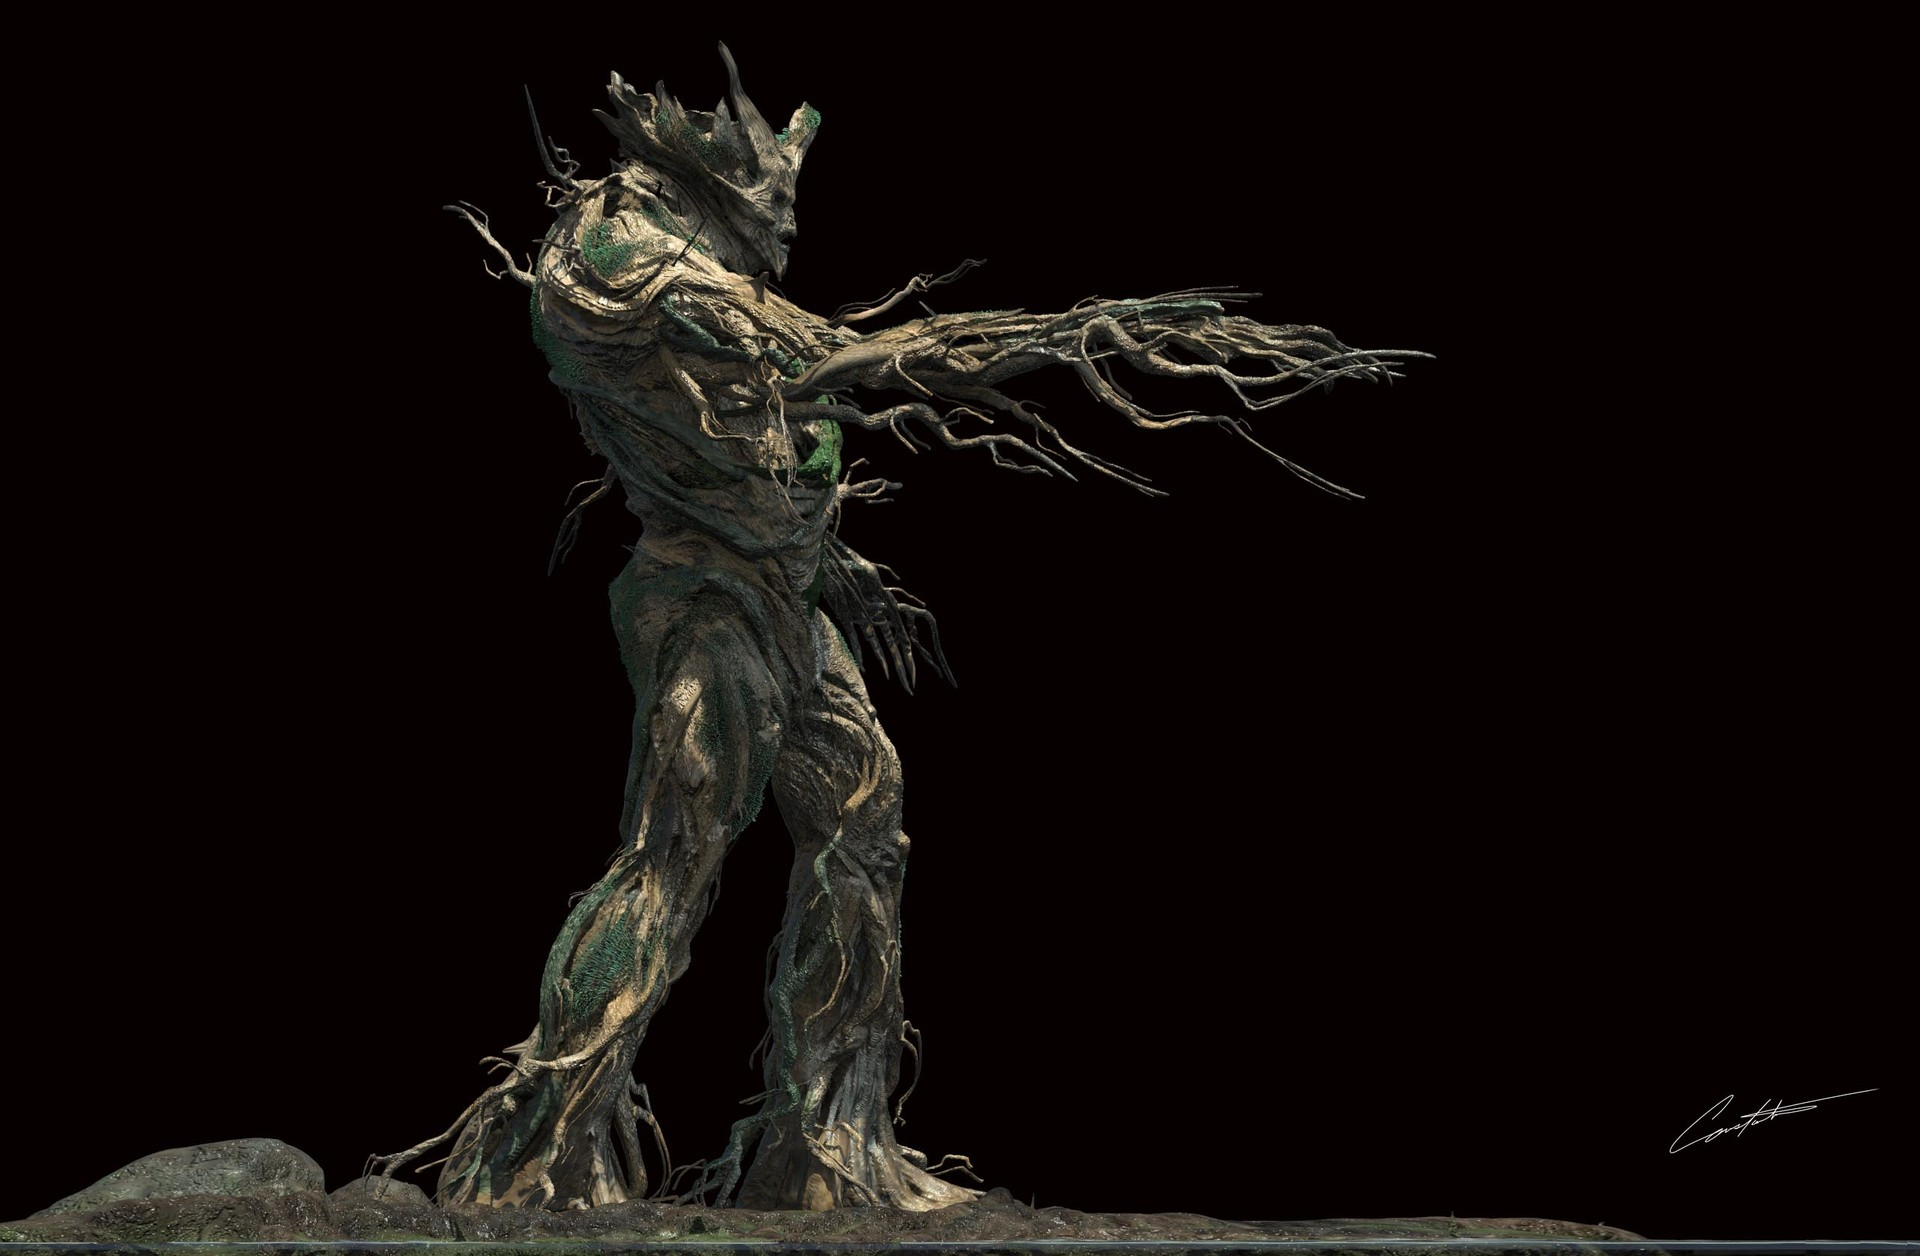 Constantine Sekeris Grimm Tree Creature Design